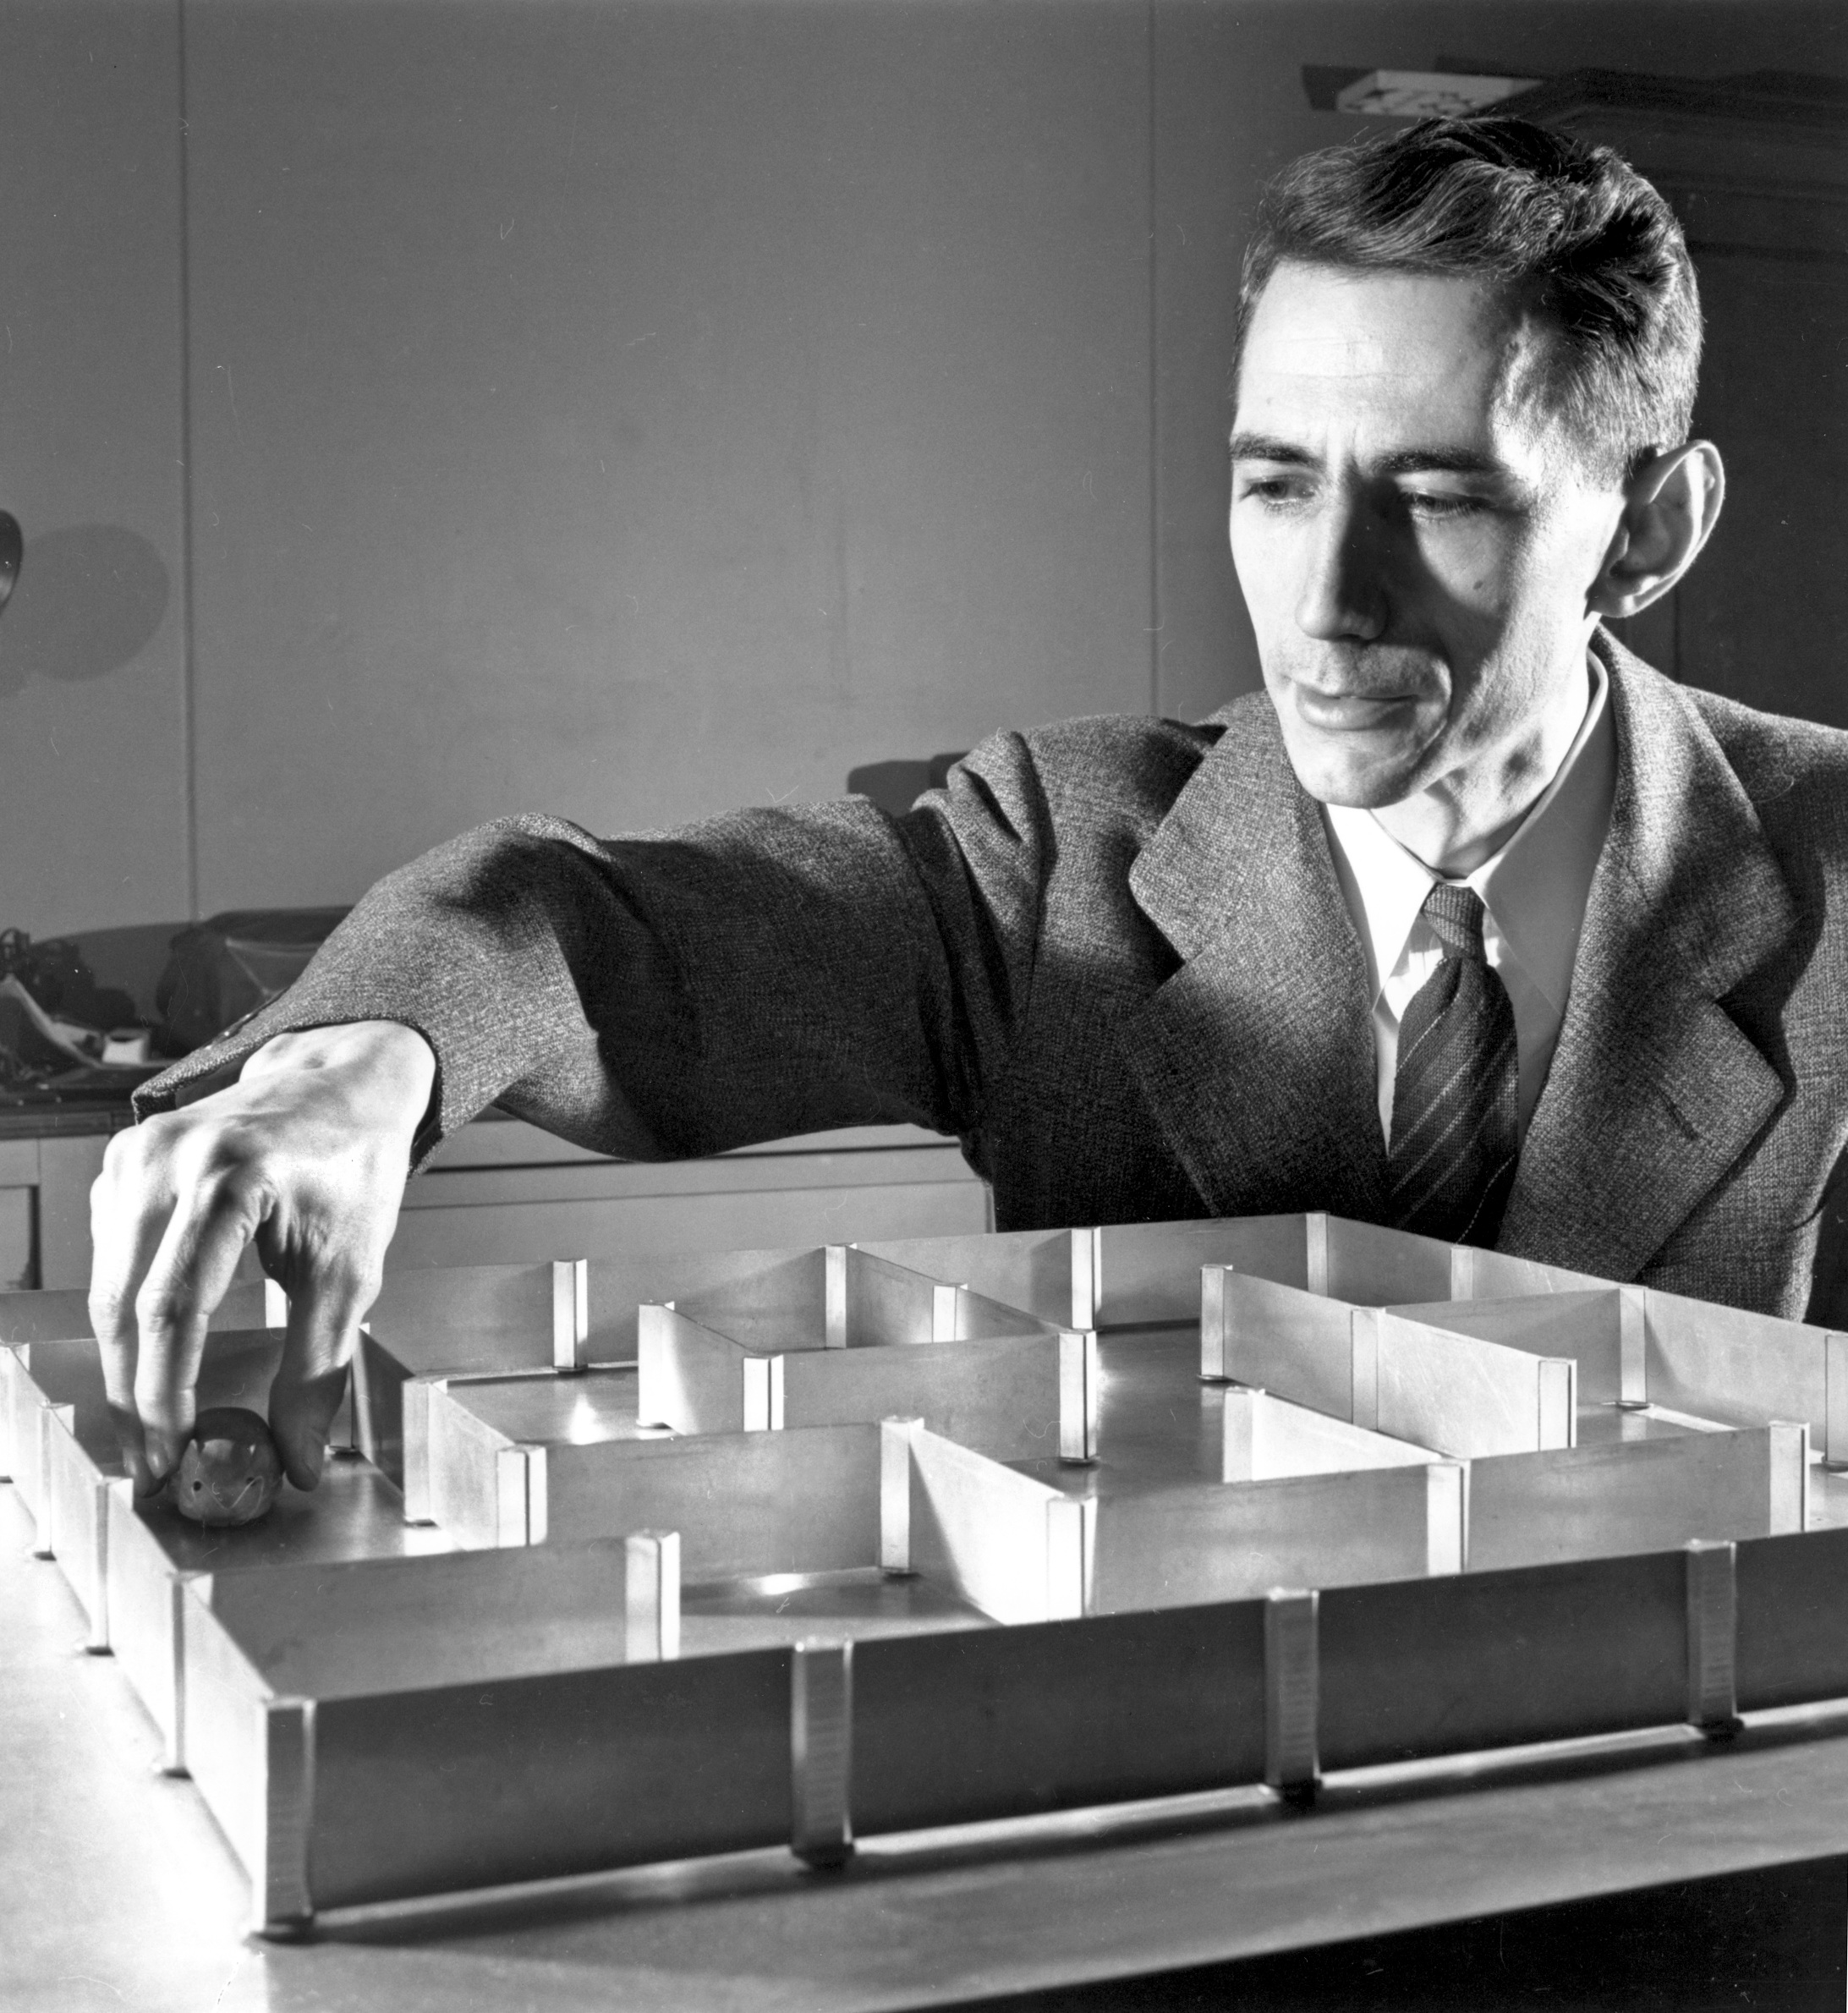 Claude Shannon, the father of information theory, at Bell Labs in 1950. Shannon proposed that there was a limit to the amount of information that could be transmitted over a single communication channel. We're hitting that limit today. (Source: Alcatel-Lucent)